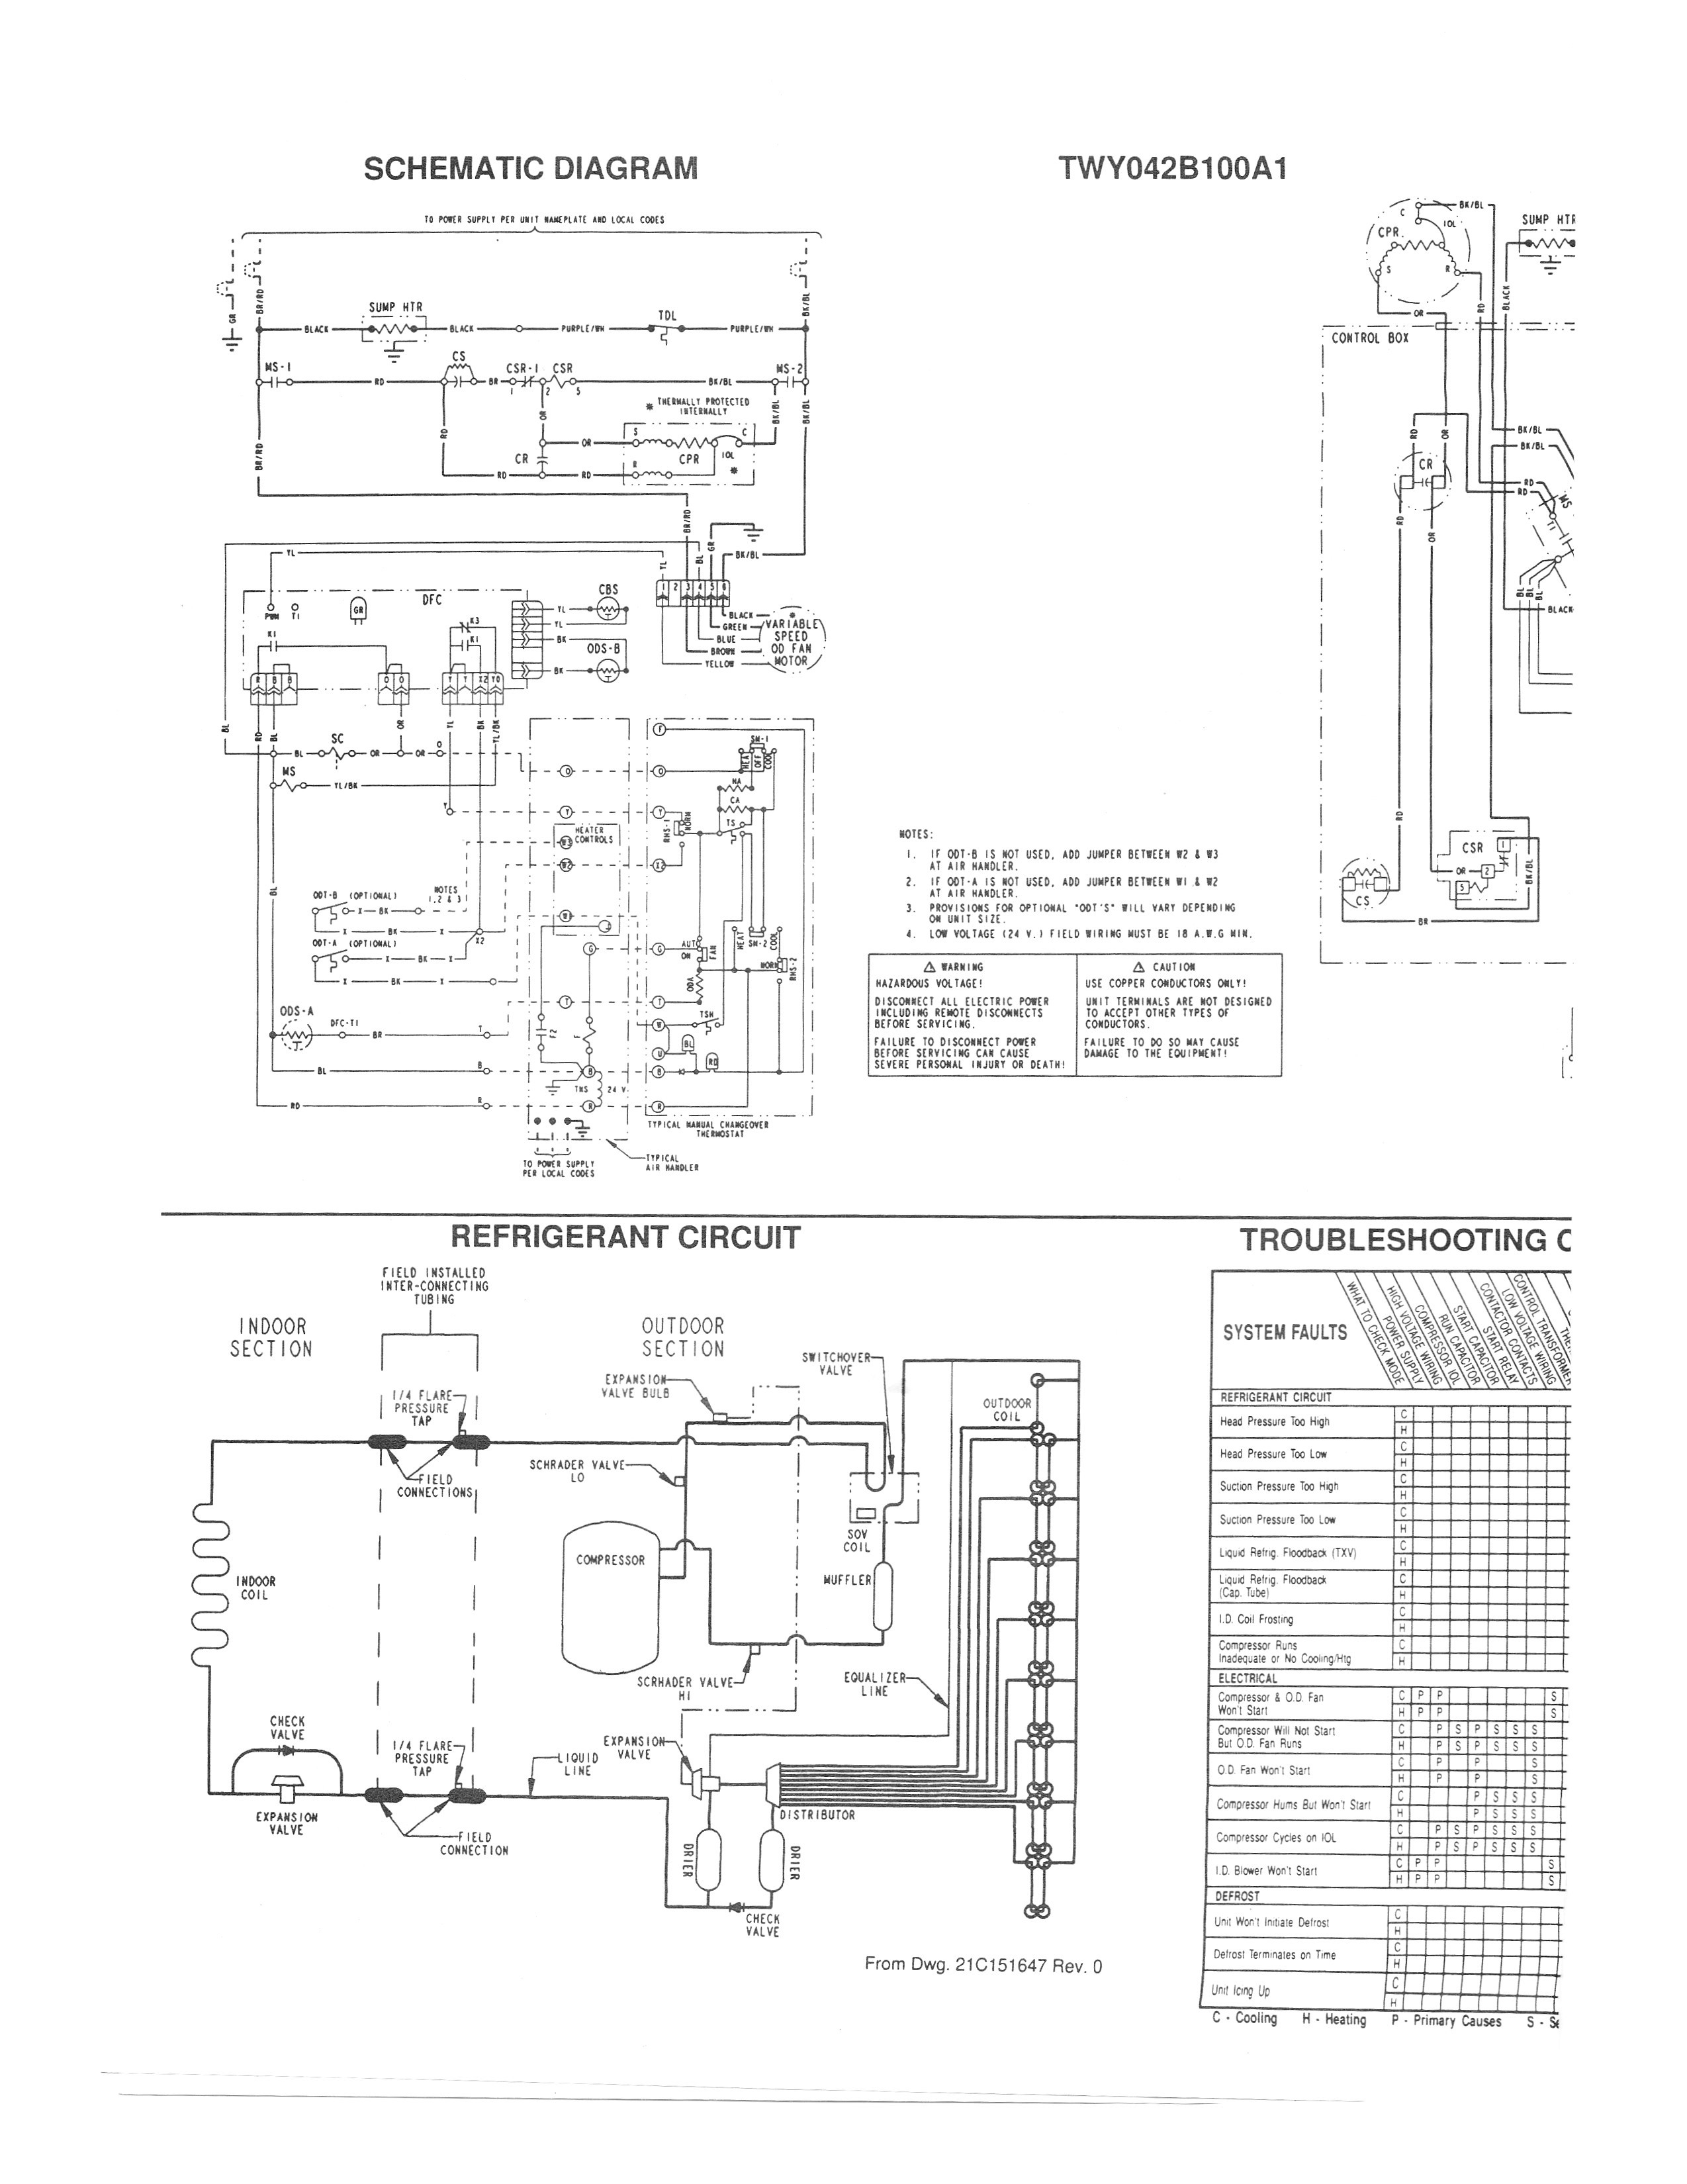 trane unit heater wiring diagram Download-Wiring Diagram For Ac Unit Thermostat Fresh Trane Hvac Wiring Diagrams Schematics With Air Conditioner Diagram 11-b